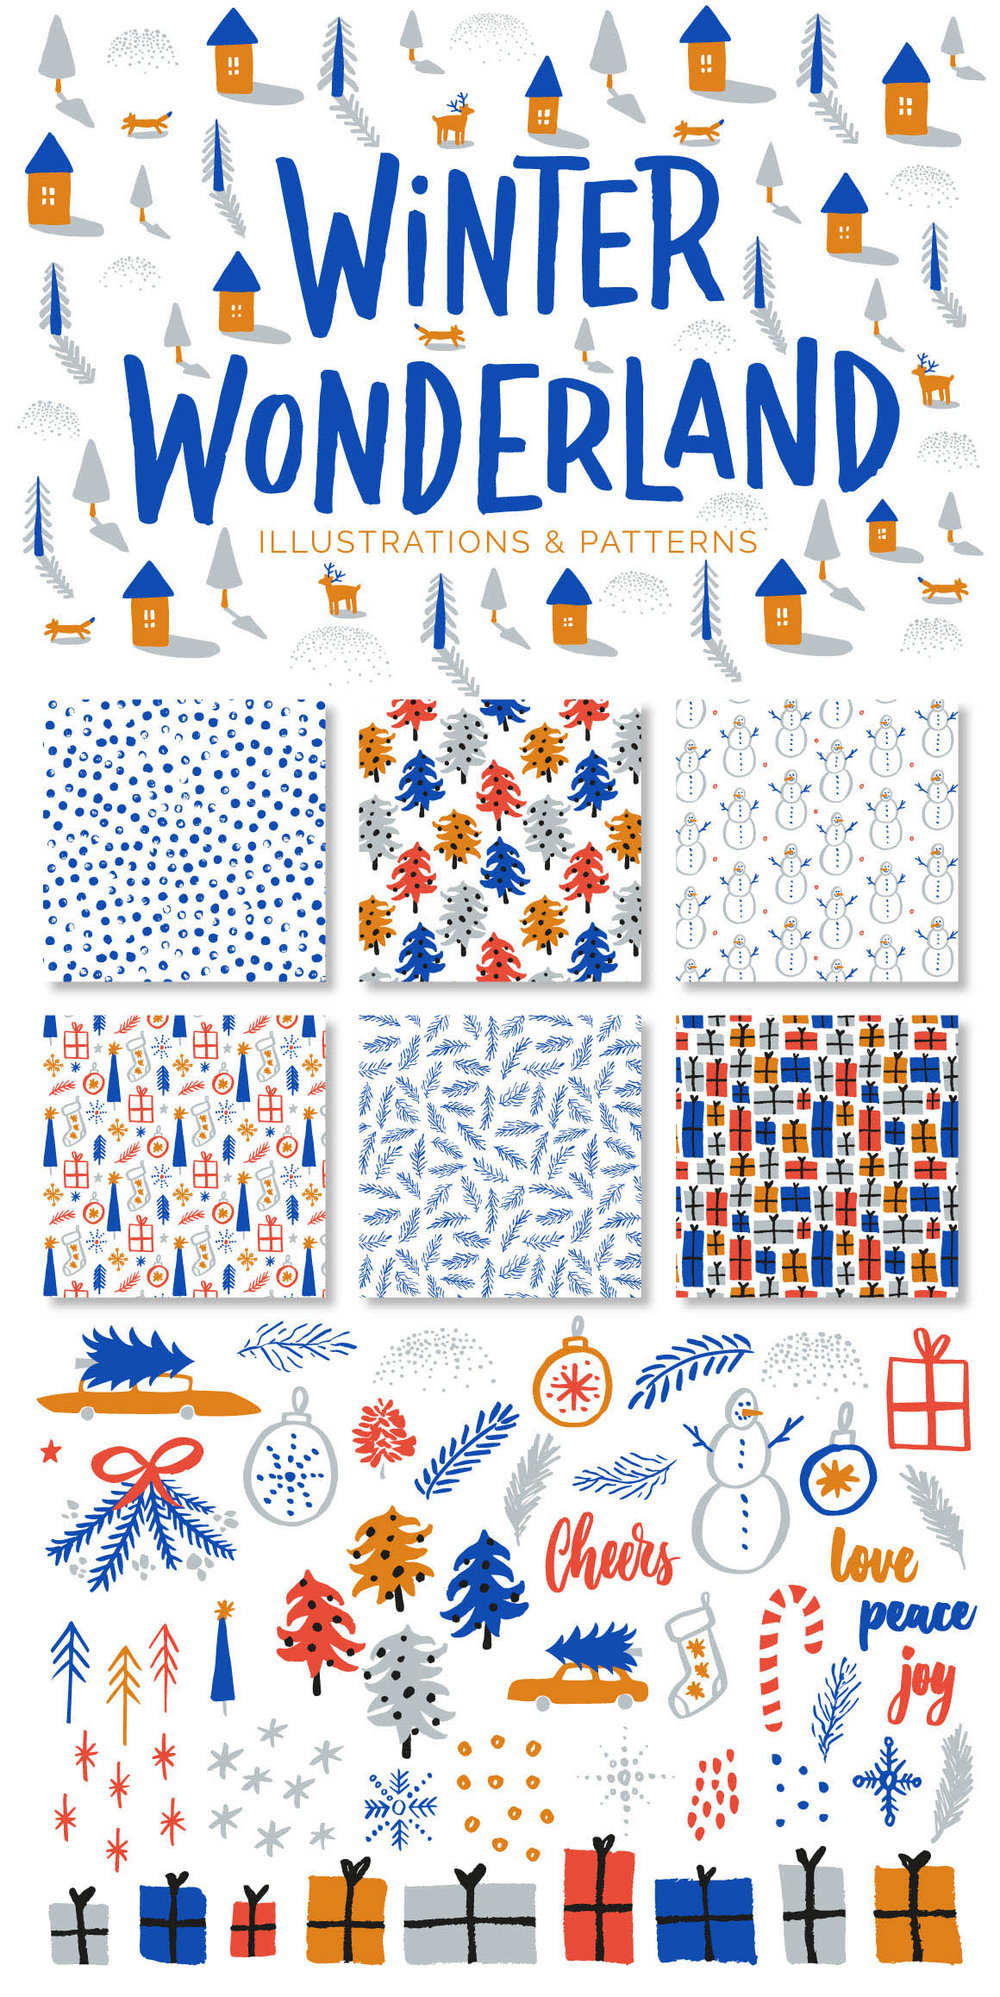 Download these festive Christmas patterns and illustrations for your design projects! | Handcrafted with love by Type and Graphics Lab | typeandgraphicslab.com